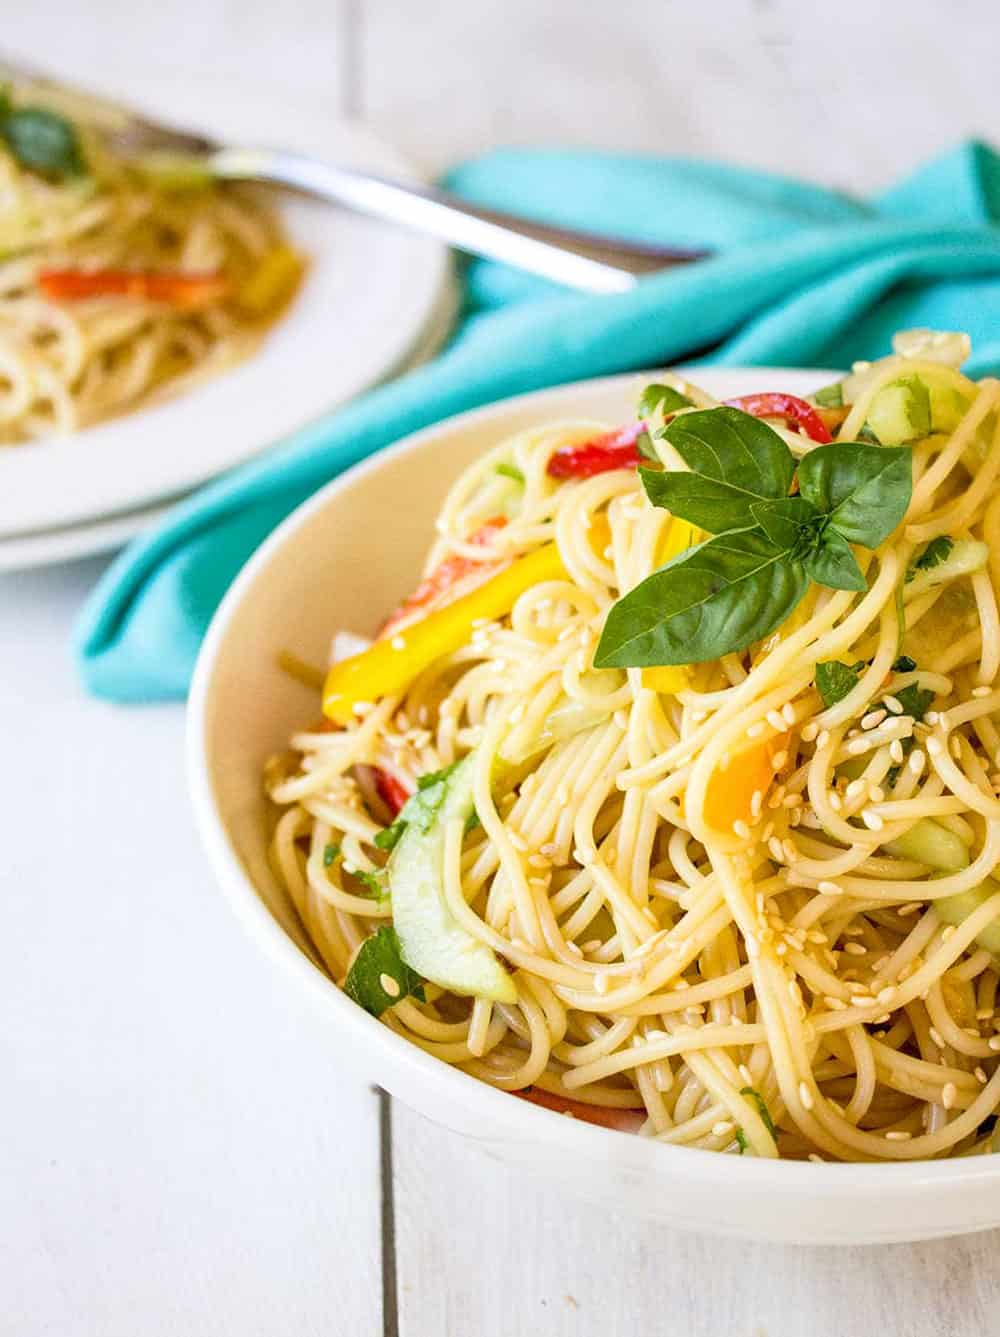 Thai Pasta Salad with red and yellow bell pepper and garnish with basil on a white background with blue hand towel